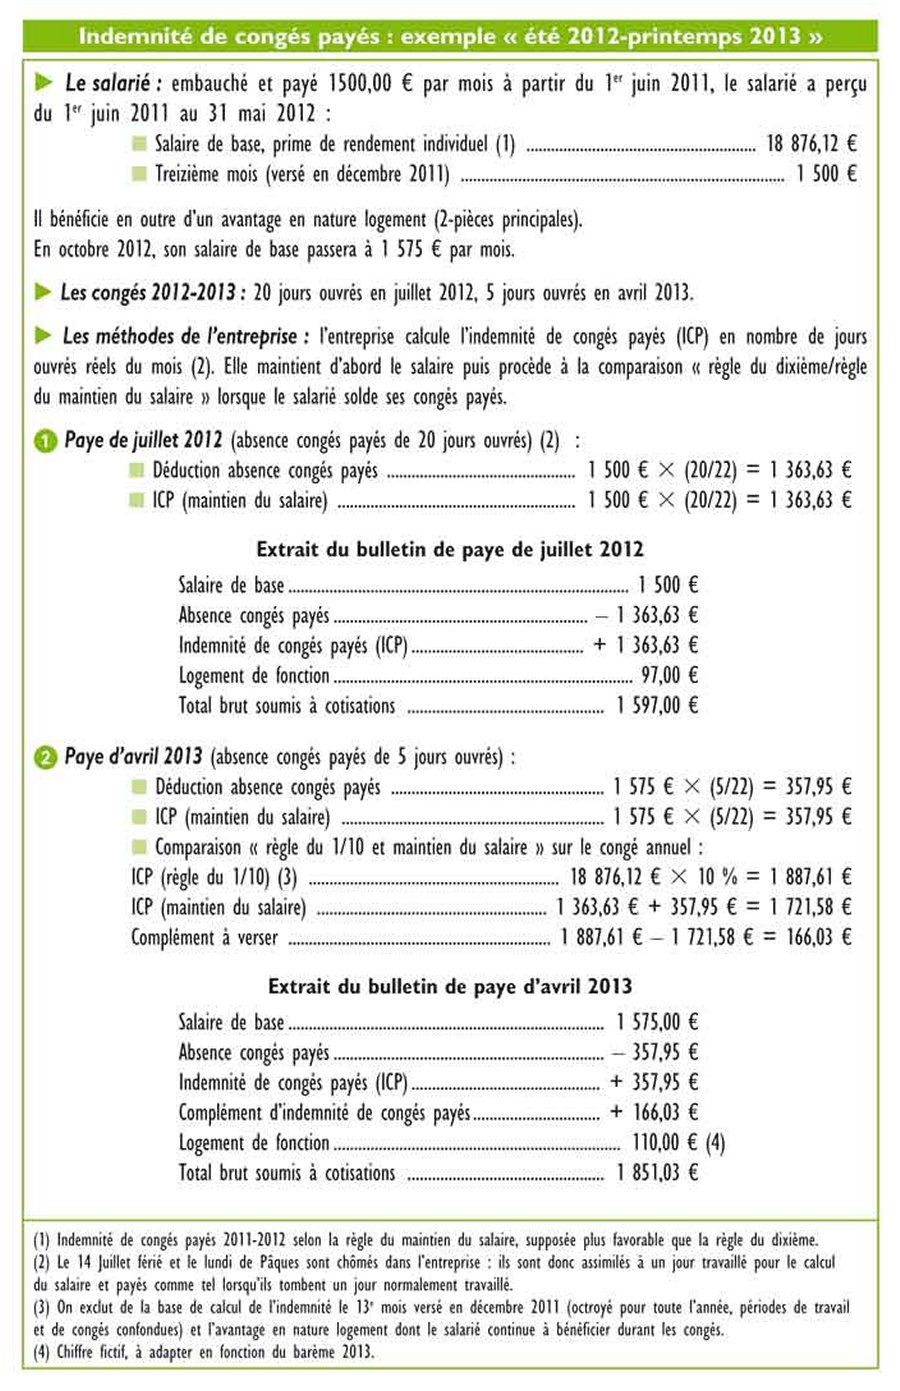 Comment Calculer Indemnite Conges Payes